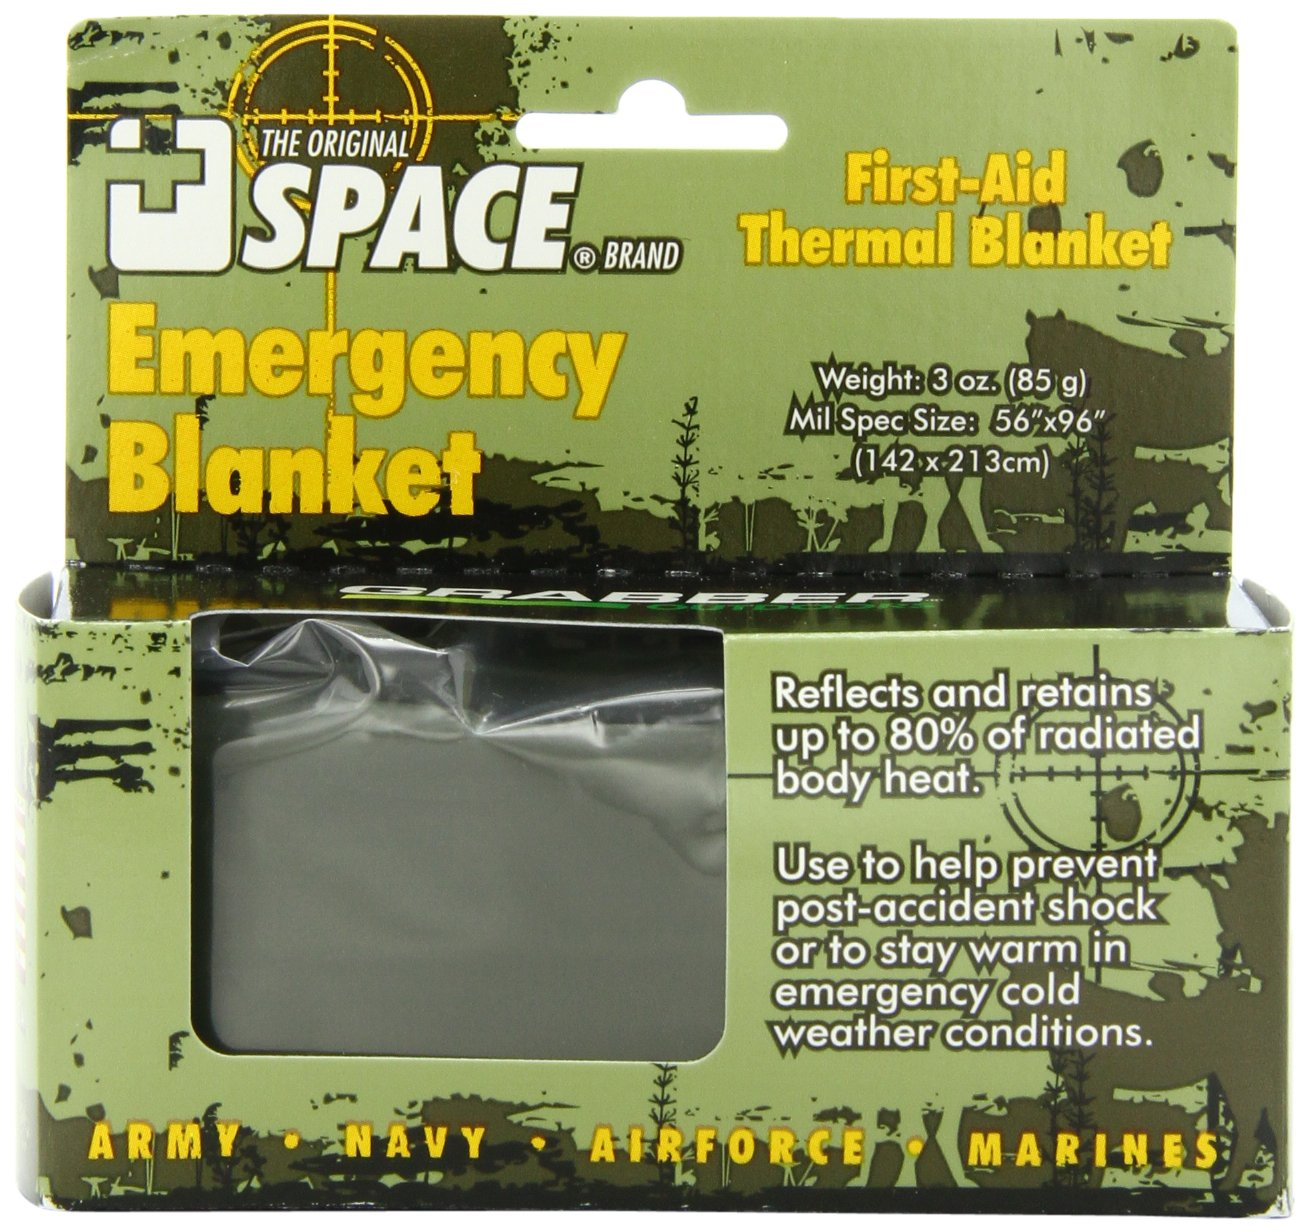 Grabber Outdoors The Original Space Brand Emergency Tactical-Survival Blanket- Olive-Drab/Silver (Pack of 3)